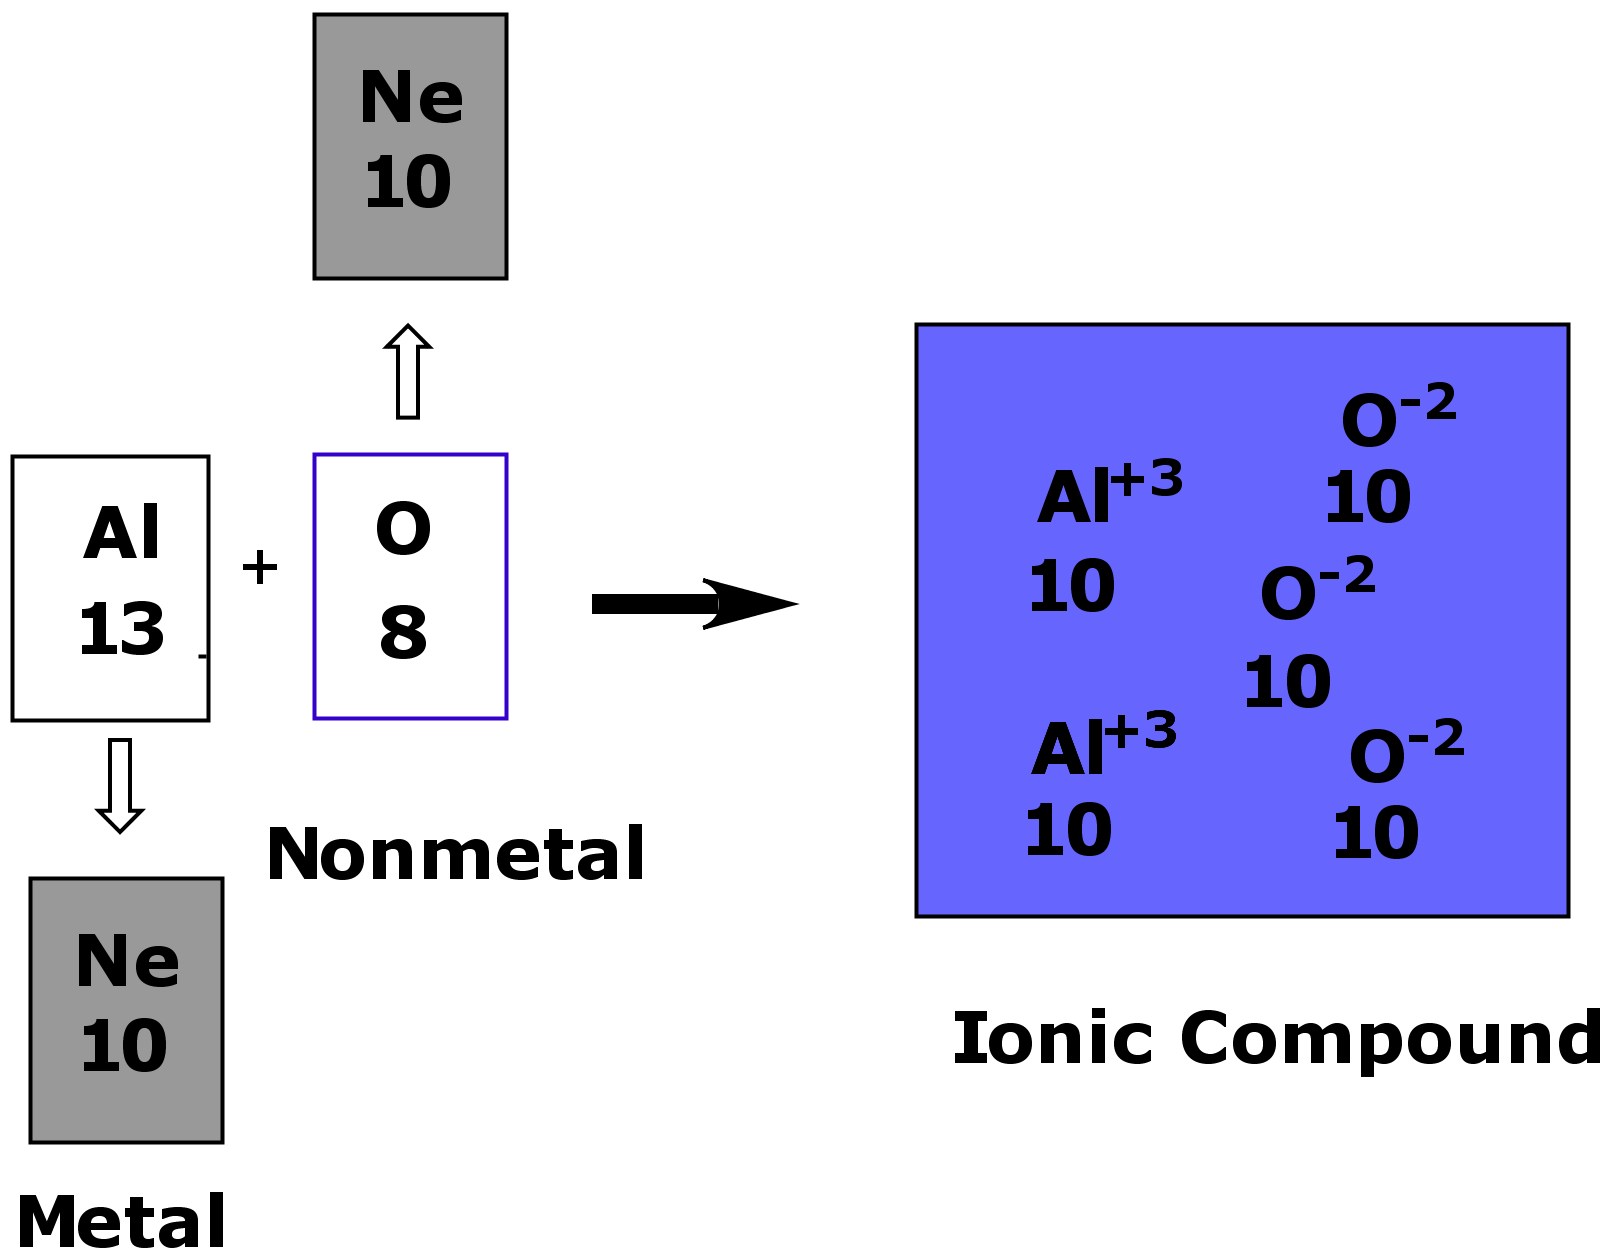 hight resolution of aluminum and oxygen interact together to form an ionic compound